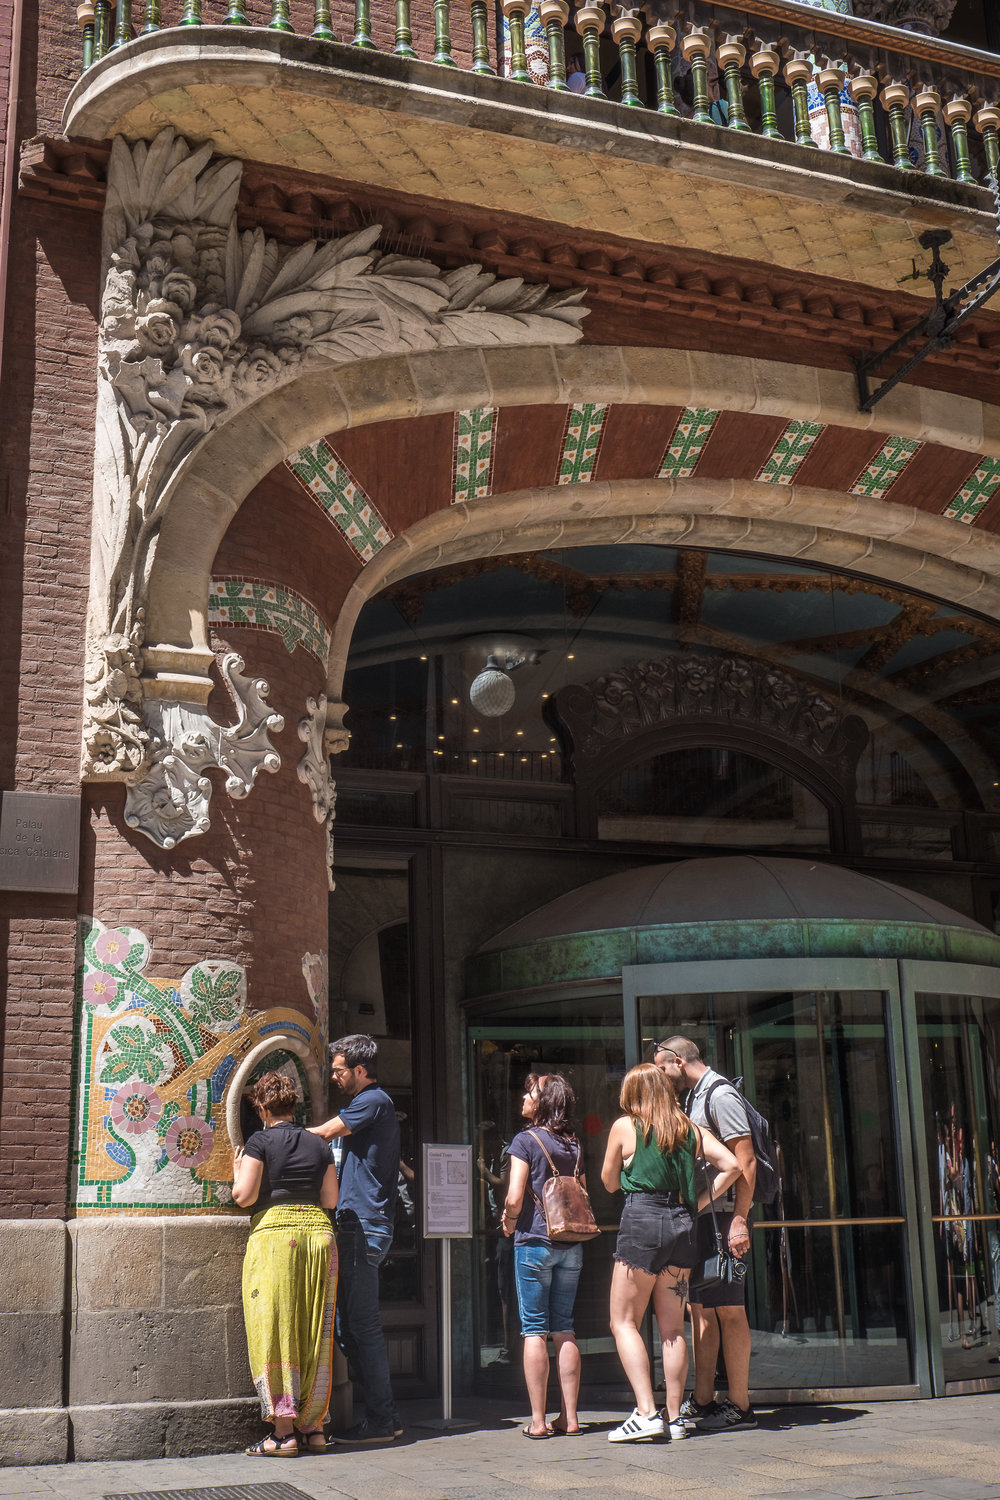 UNESCO-listed Palau de la Musica Catalana and Hospital de Sant Pau